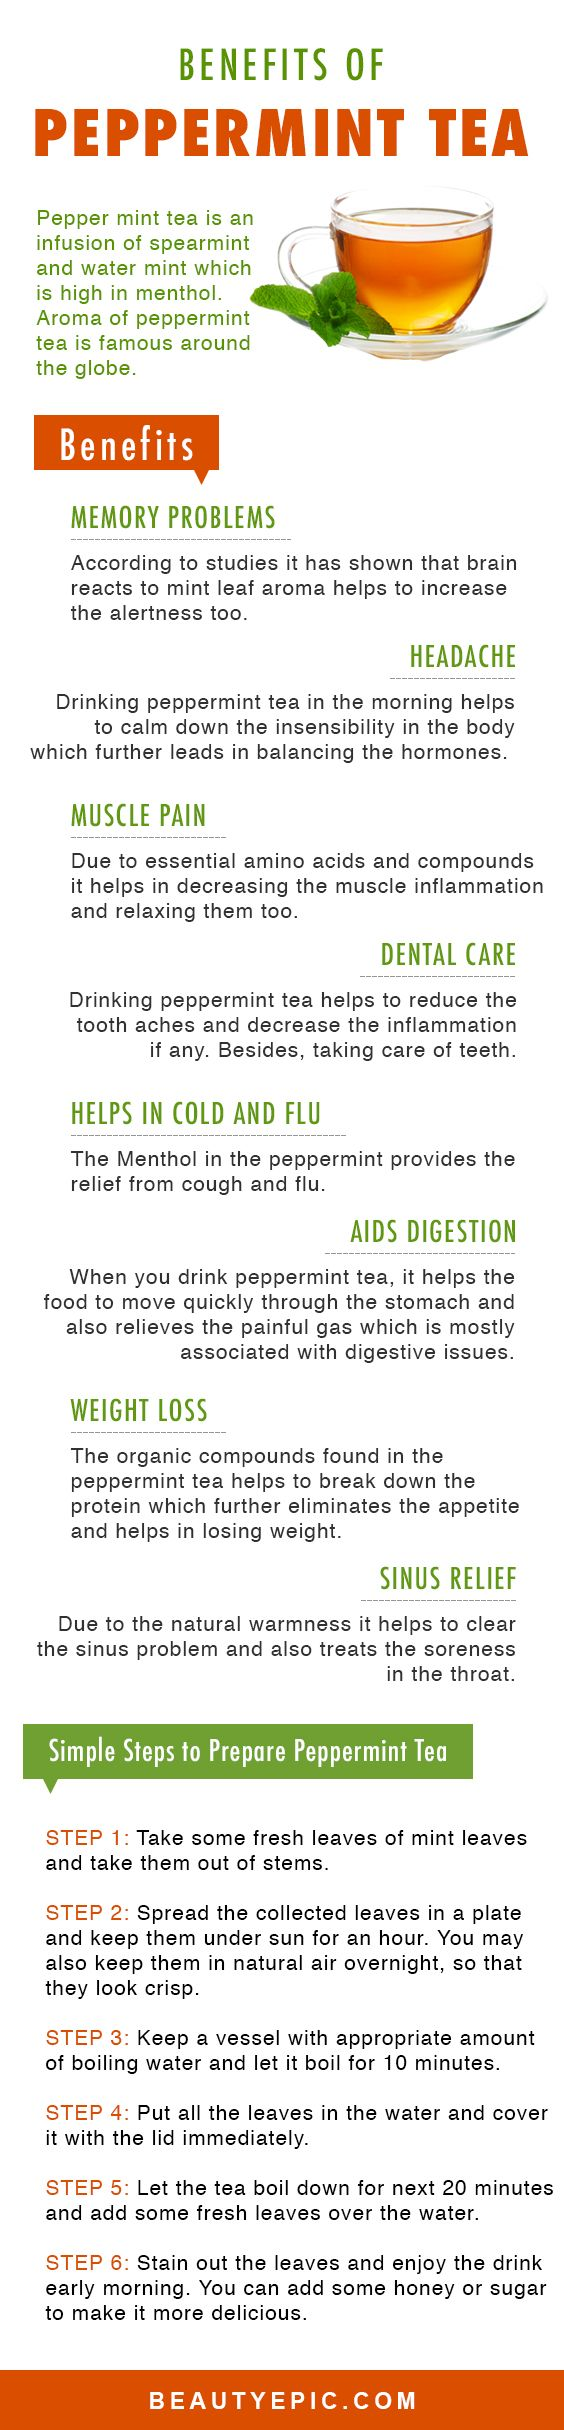 12 Amazing Health Benefits of Drinking Peppermint Tea http://teapause.com/all-about-tea/best-tea-brands/